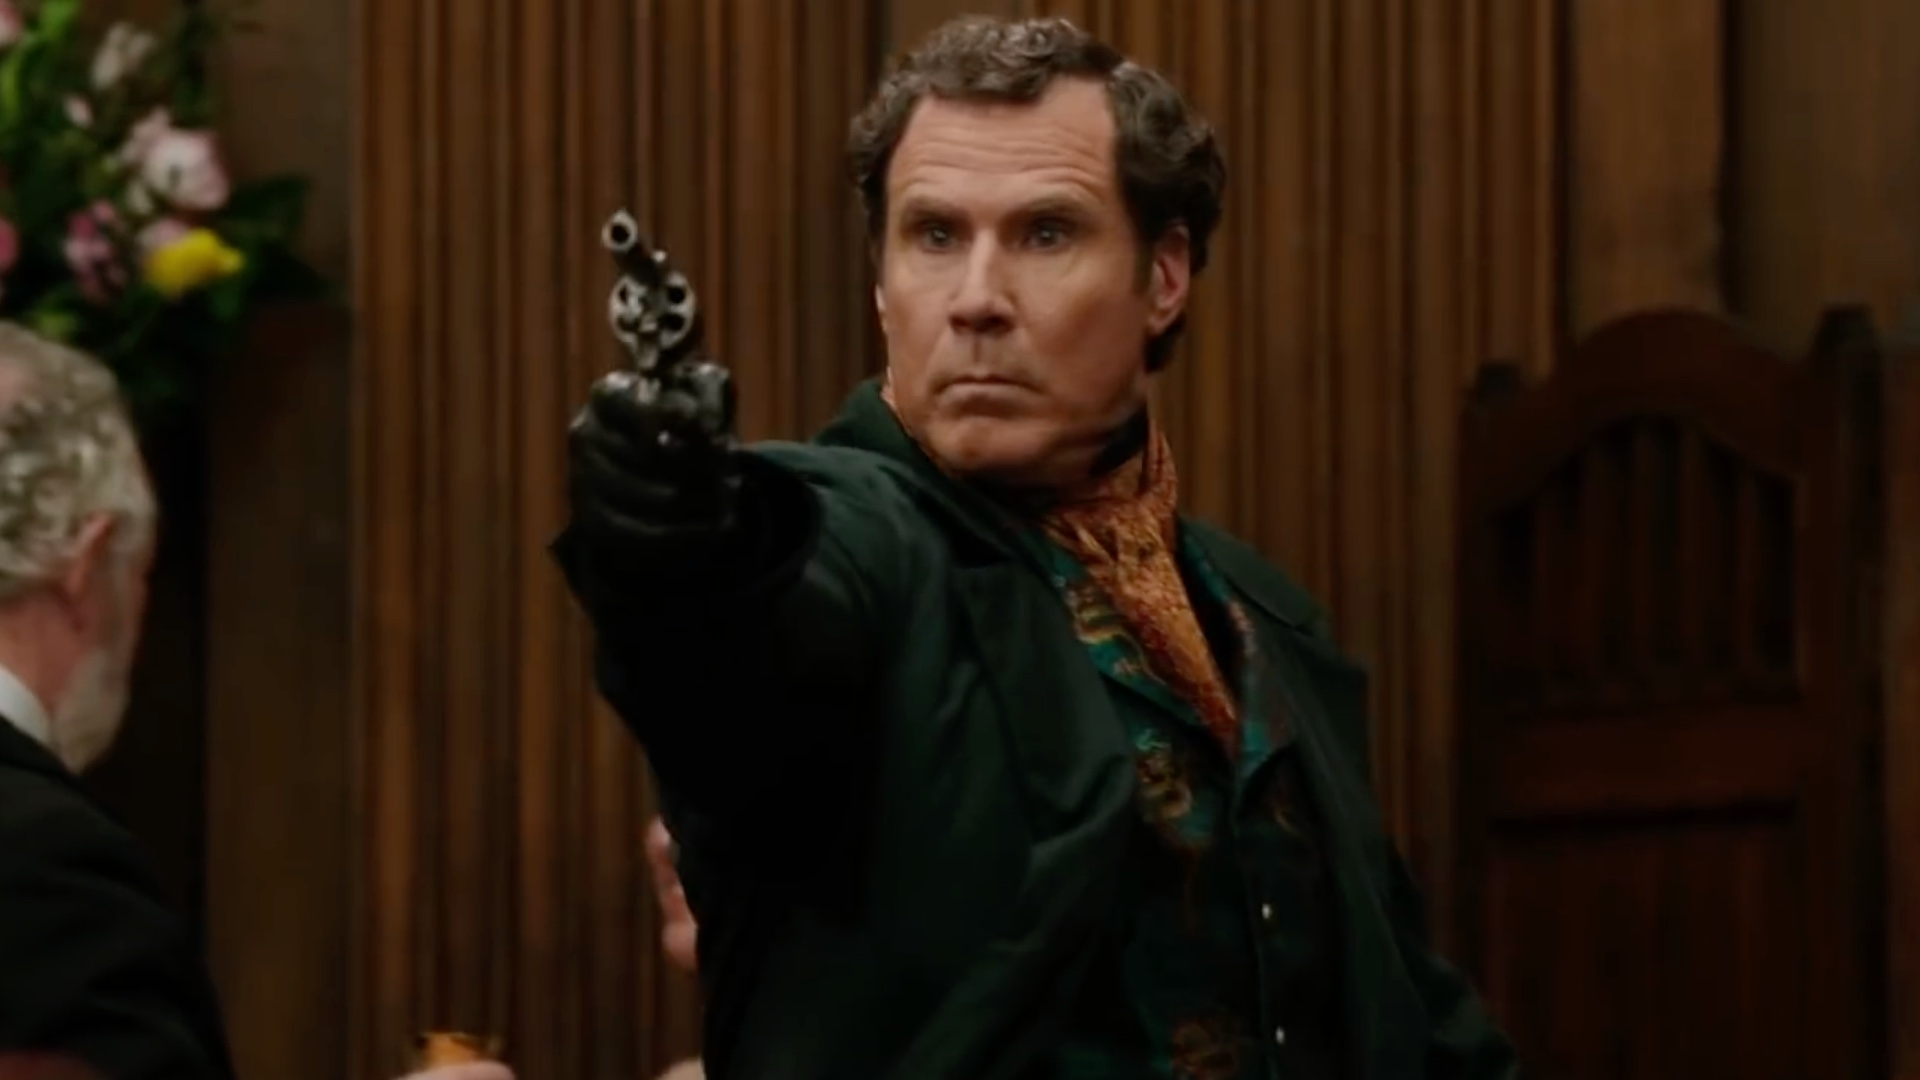 will-ferrellandjohn-c-reilly-are-on-the-case-in-funny-trailer-for-holmes-and-watson-social.jpg